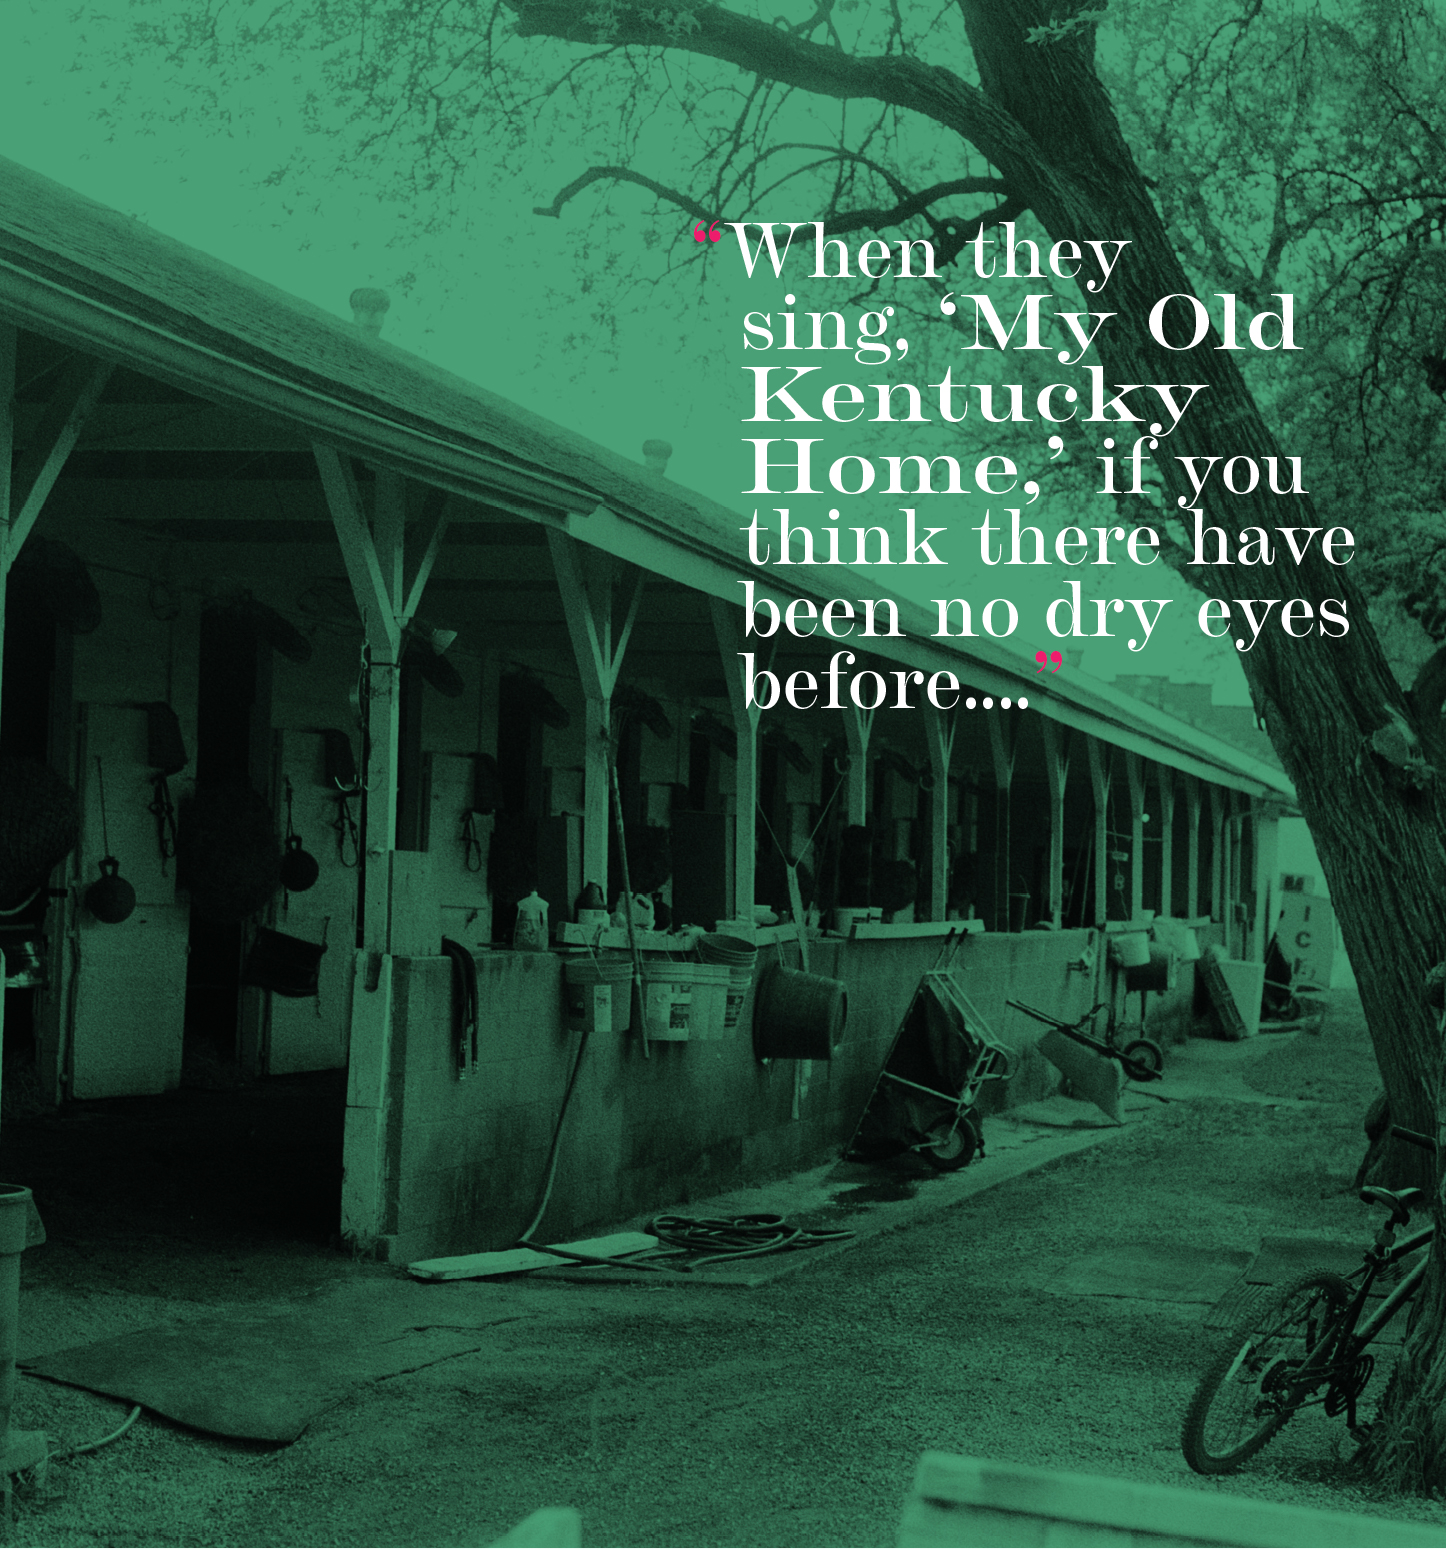 """""""When they sing, 'My Old Kentucky Home,' if you think there have been no dry eyes before...."""""""